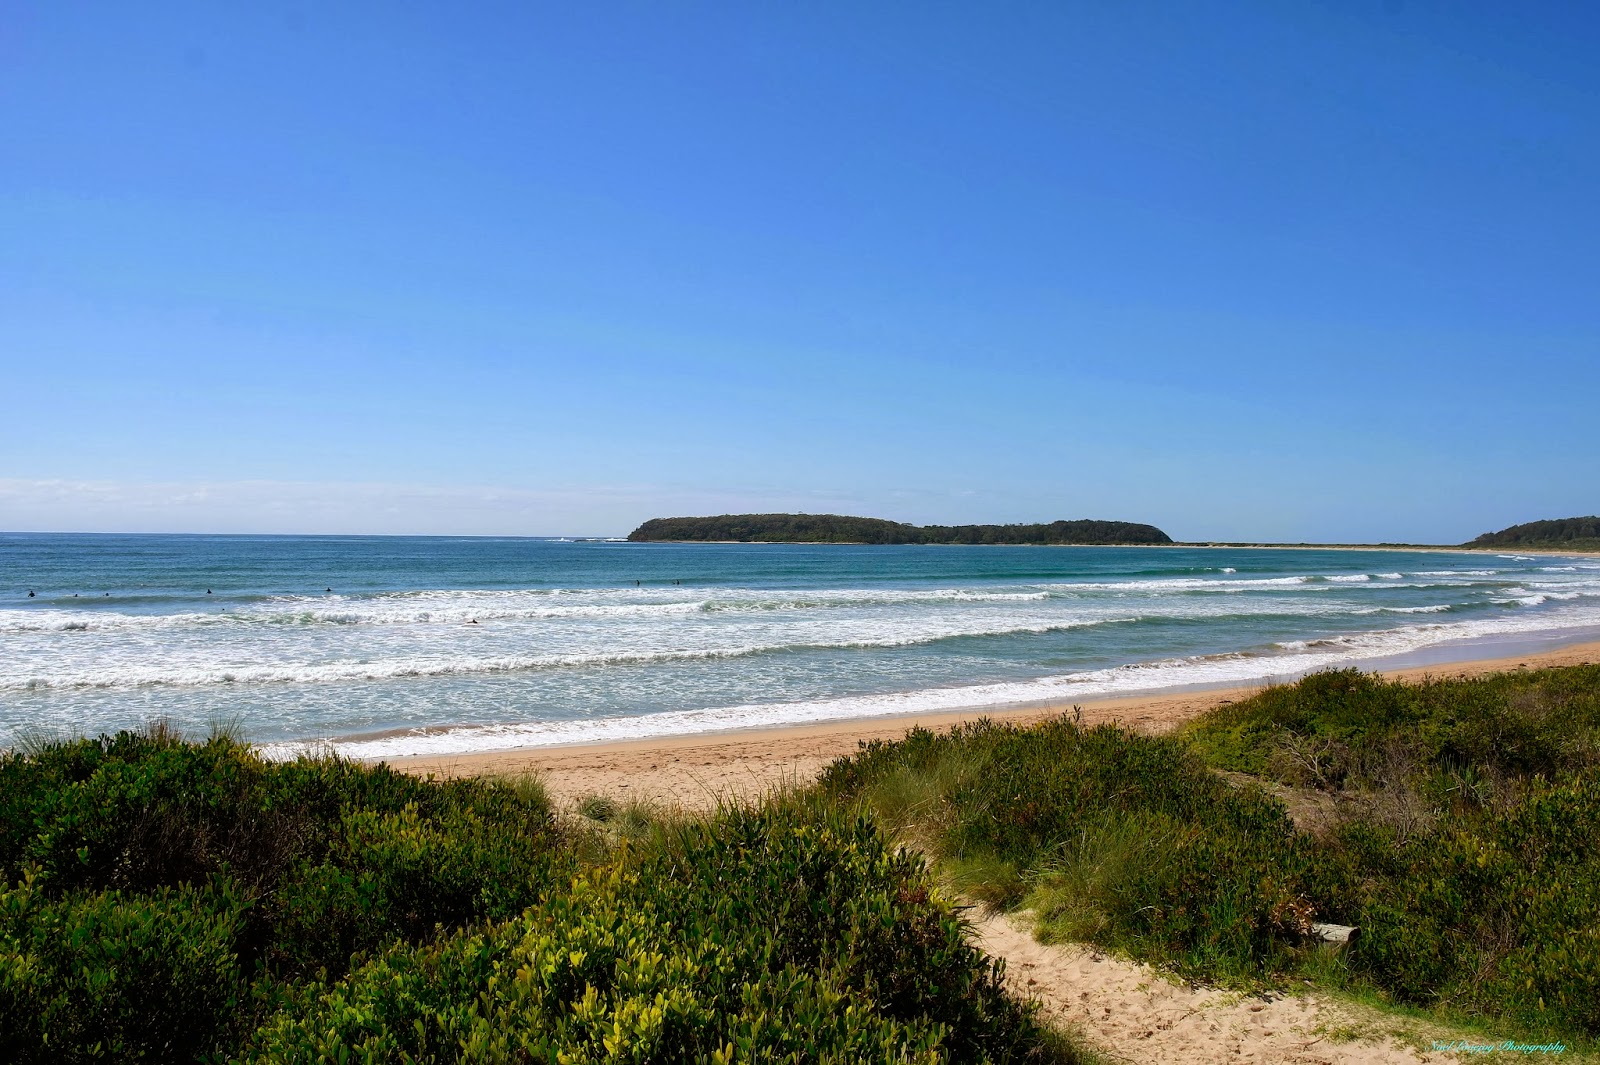 Moruya Australia  city photos gallery : Broulee North Beach, plenty of Surfers here but not much wave action ...